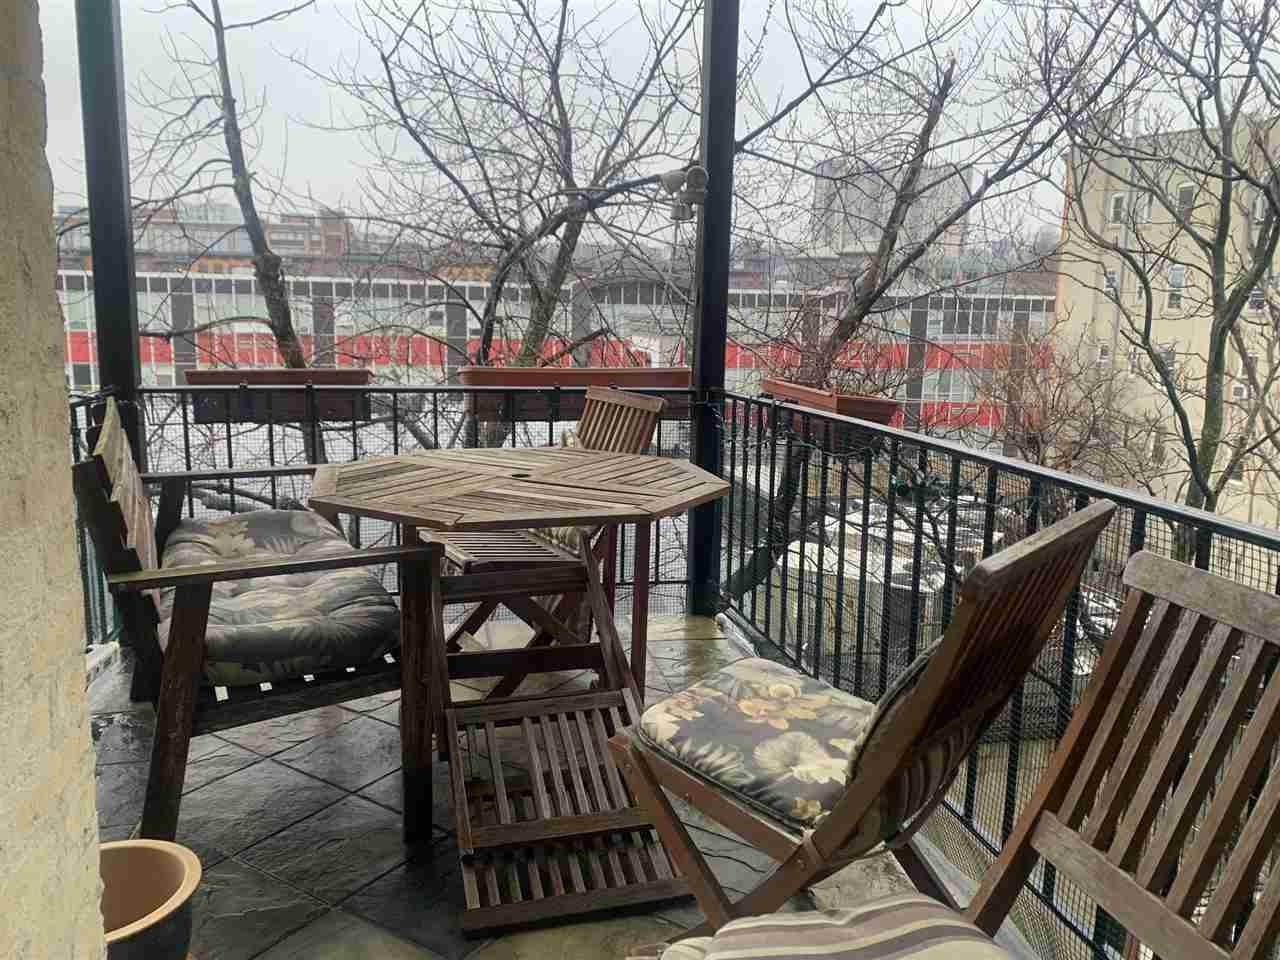 6. Single Family Home for Rent at 816 WILLOW AVENUE #4R Hoboken, New Jersey, 07030 United States